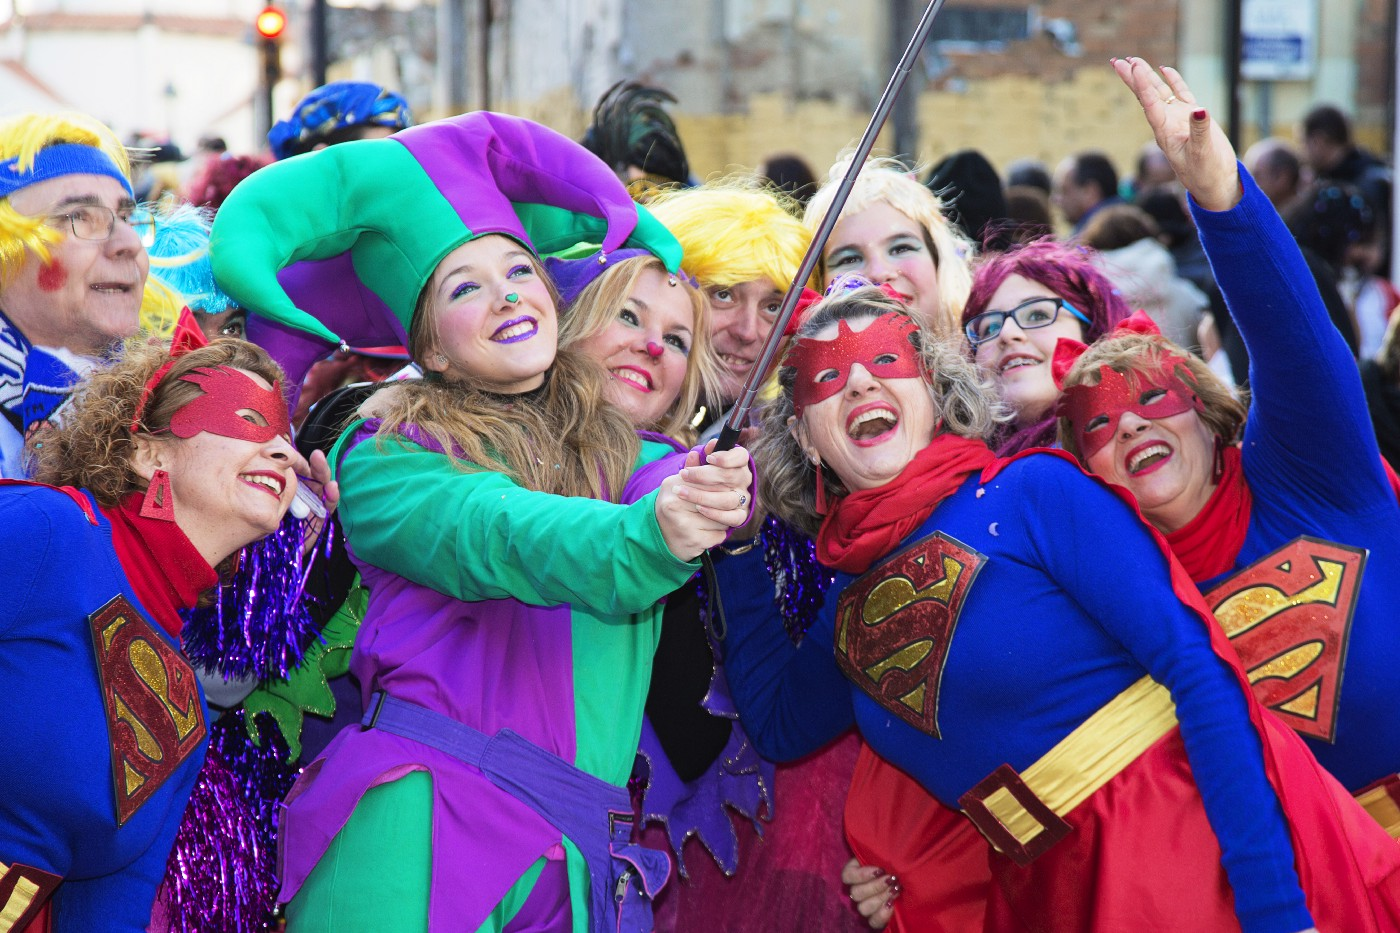 the image is that of a crowd of people dressed in superhero costumes. The most popular one being worn is Supergirl's.